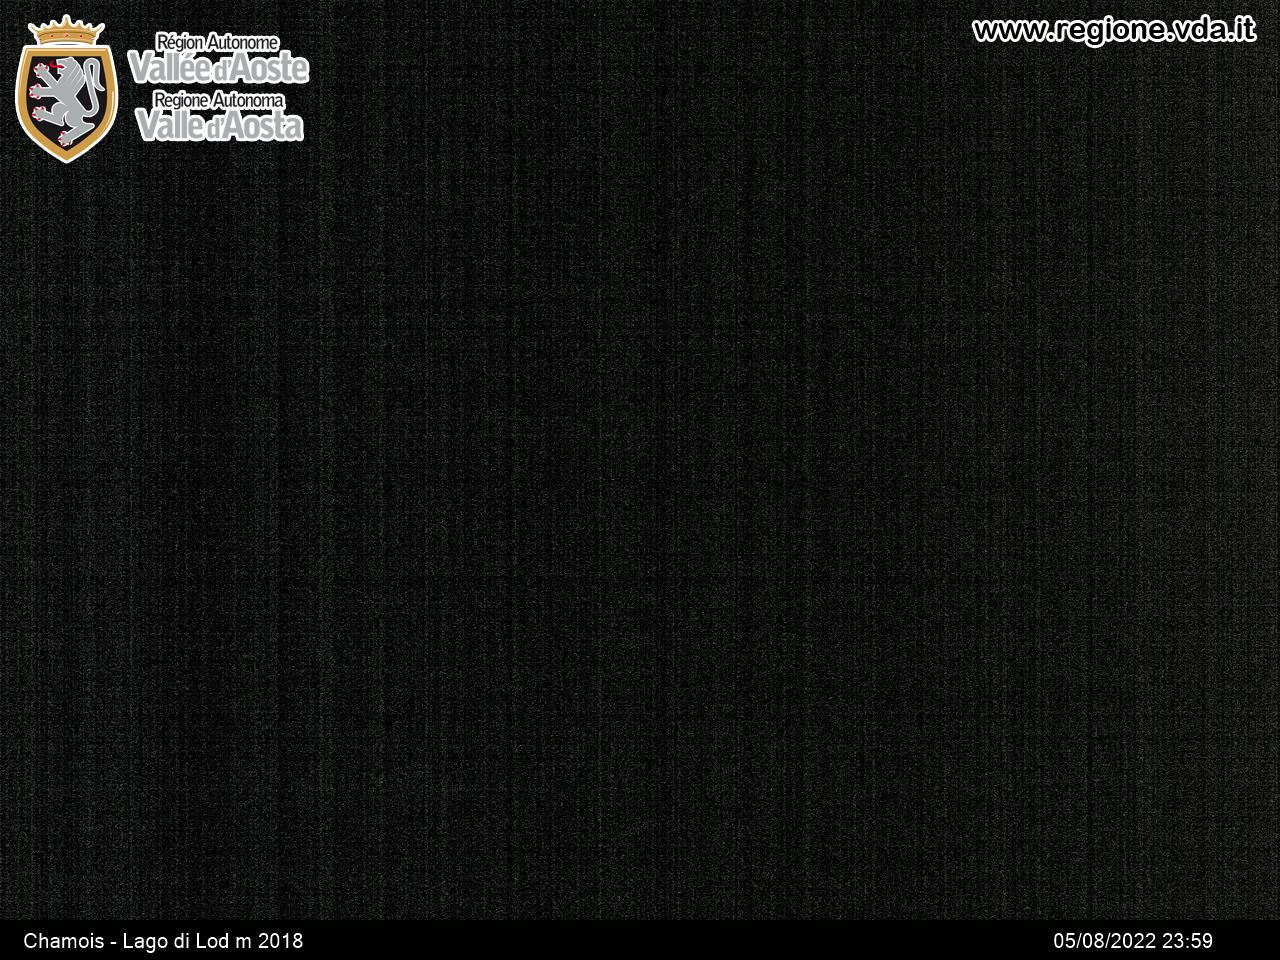 Webcam 2: Lago Lod, altitude 2014.